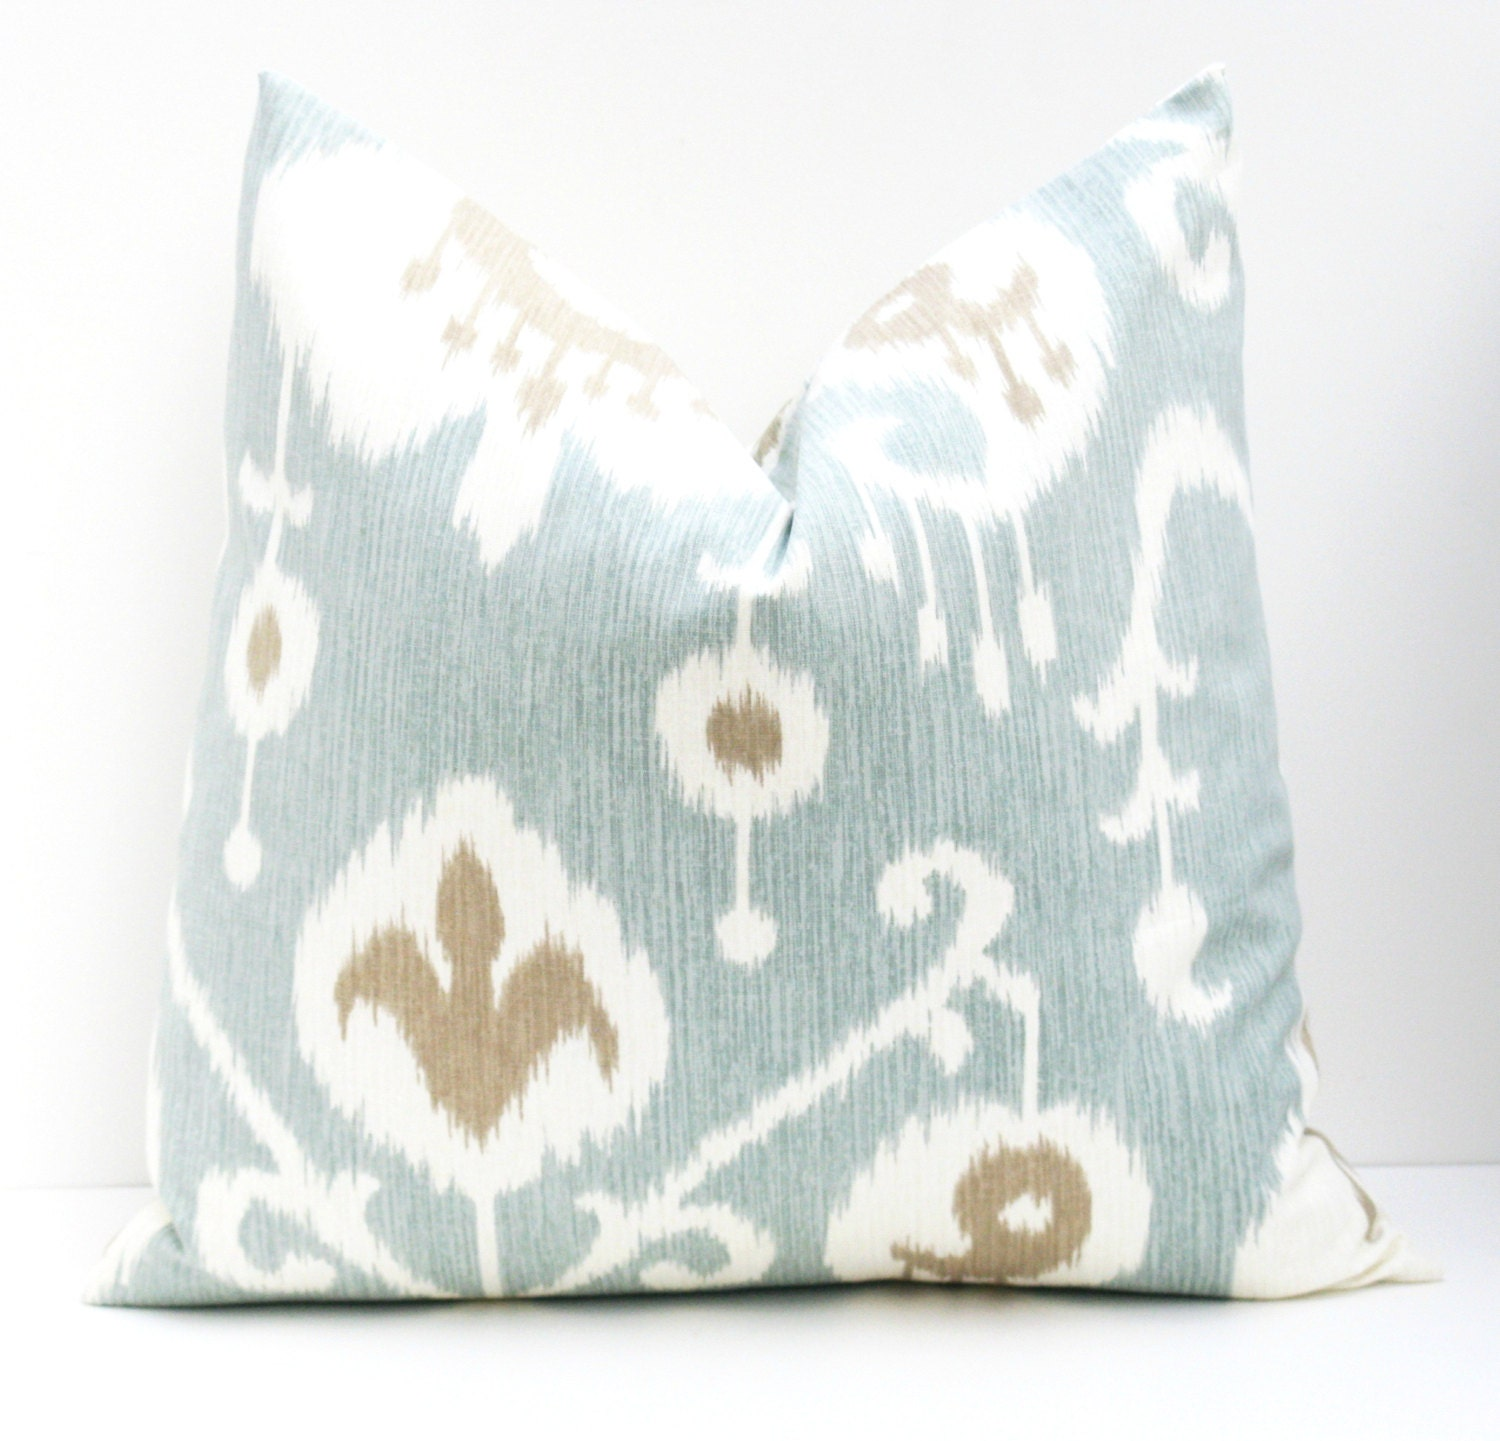 22x22 Decorative Pillows : Euro Pillow Sham Decorative Pillows 22x22 pillow by EastAndNest